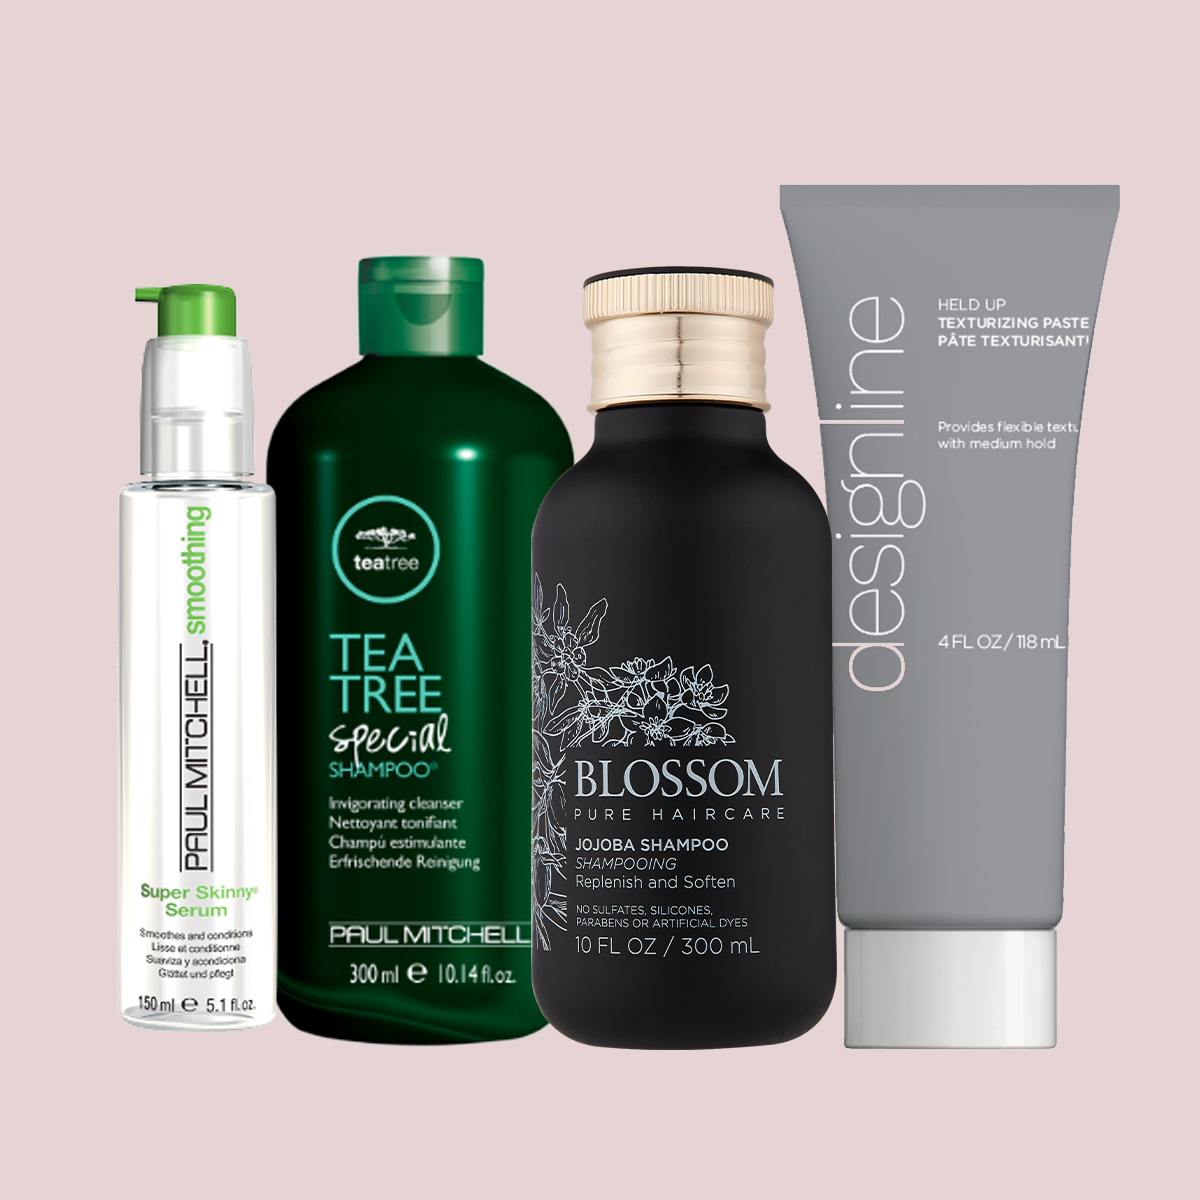 Assorted professional haircare products including Paul Mitchell, Blossom Pure Haircare and deslingline